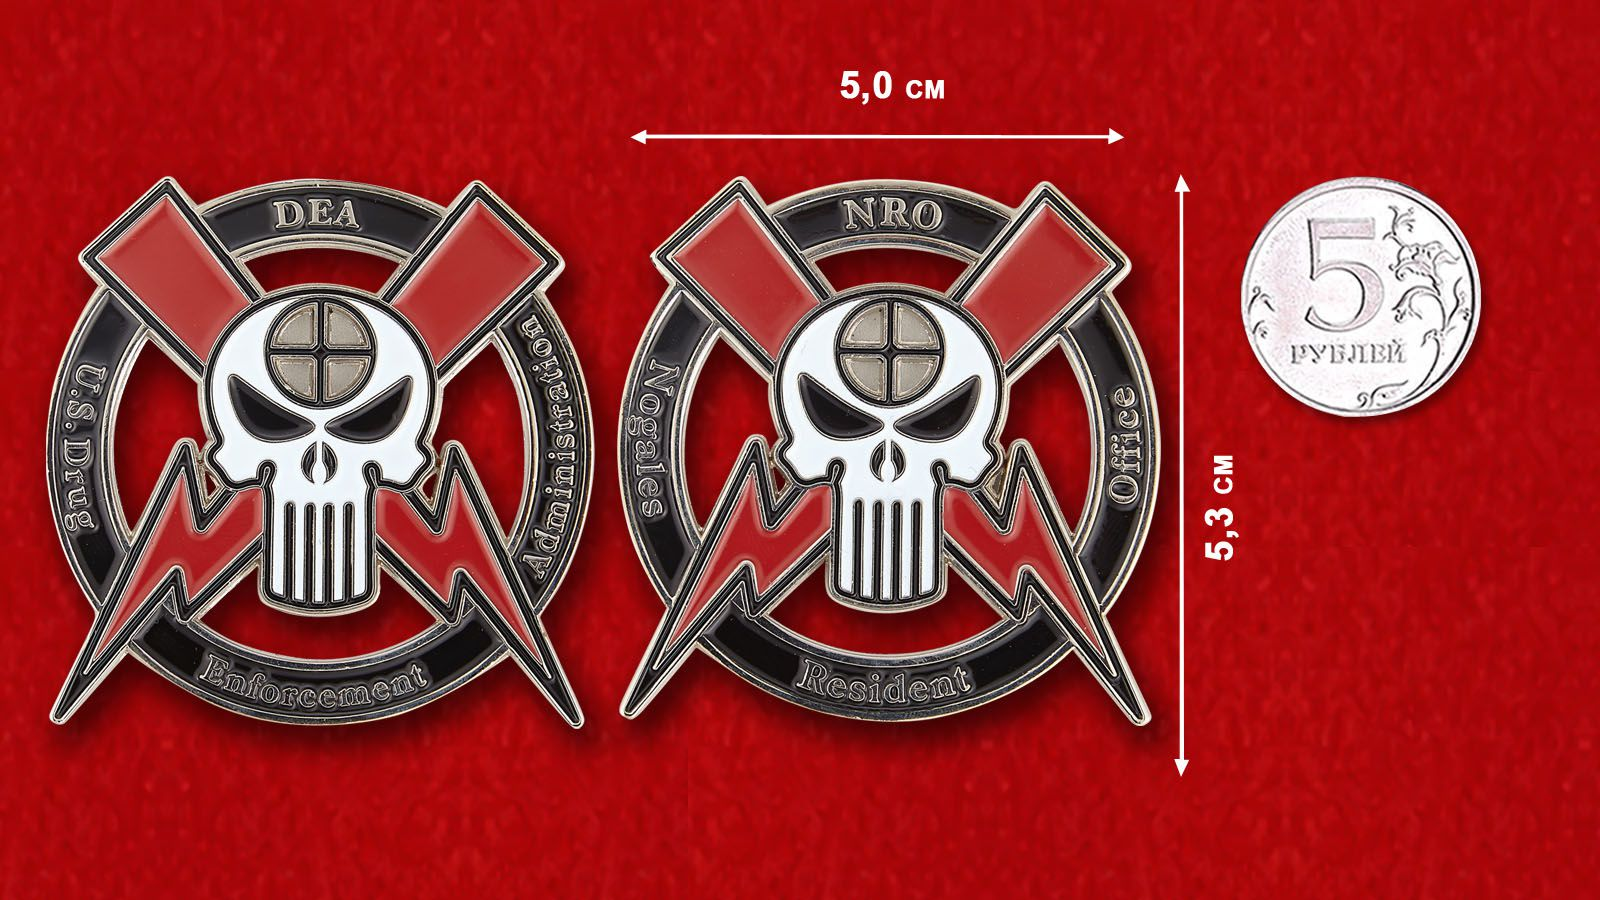 DEA Nogales Resident Office Challenge Coin - comparative size